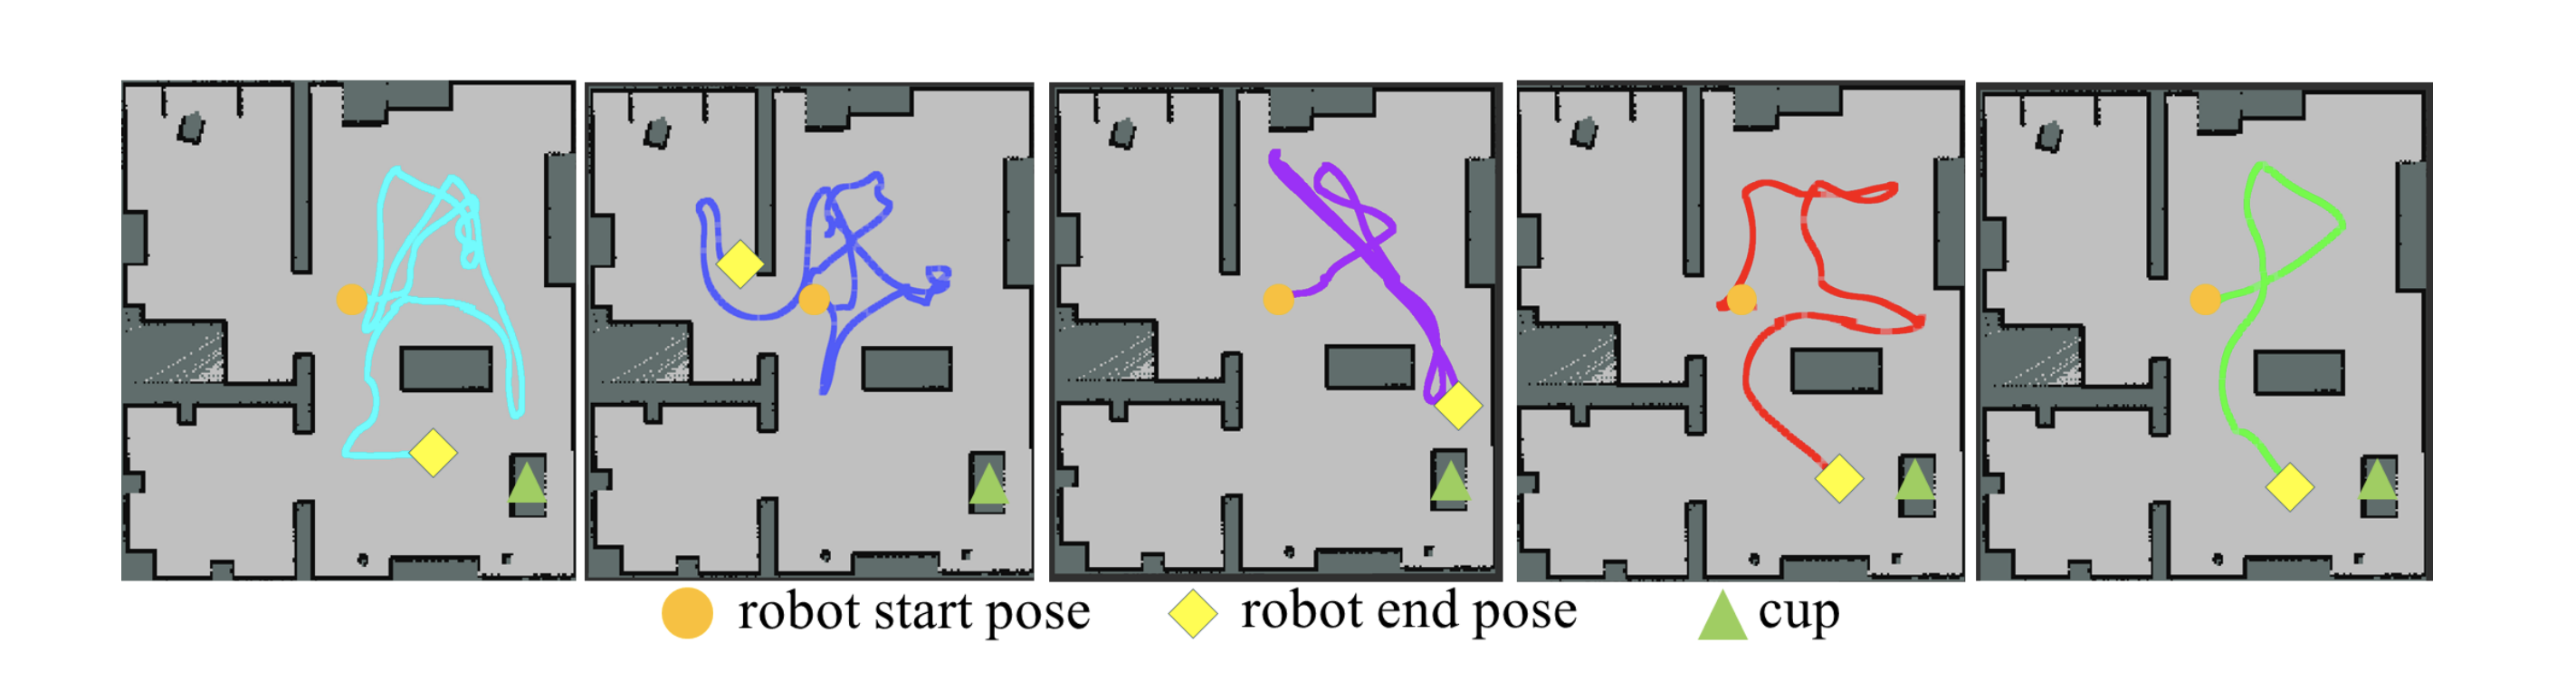 Illustration of robot's path using different methods